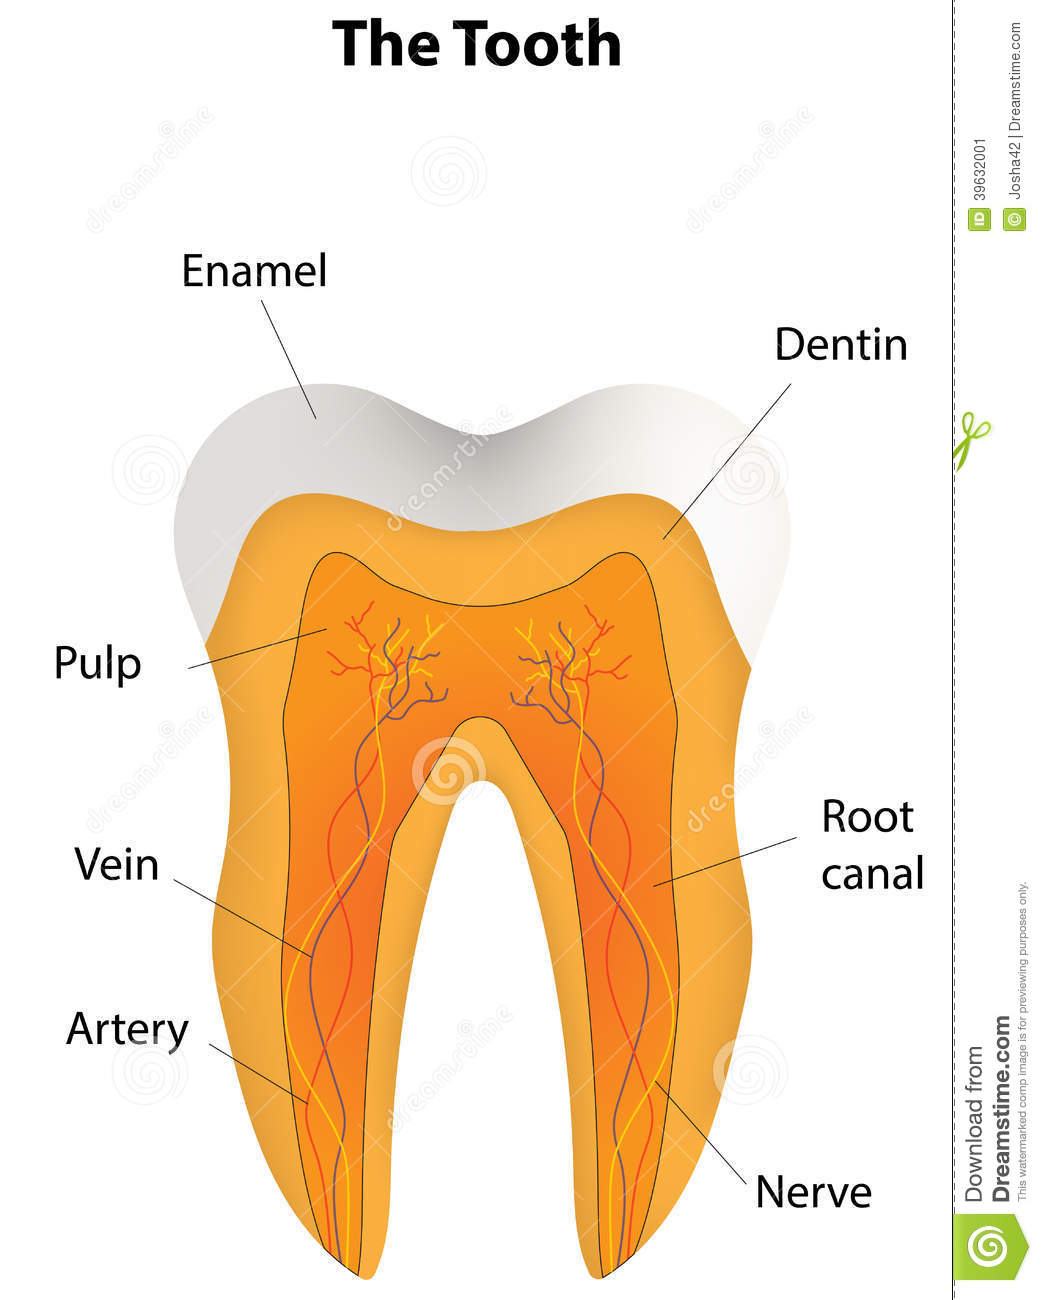 hight resolution of anatomical tooth labeled diagram stock vector illustration of a very lovely presented tooth with 3d shading